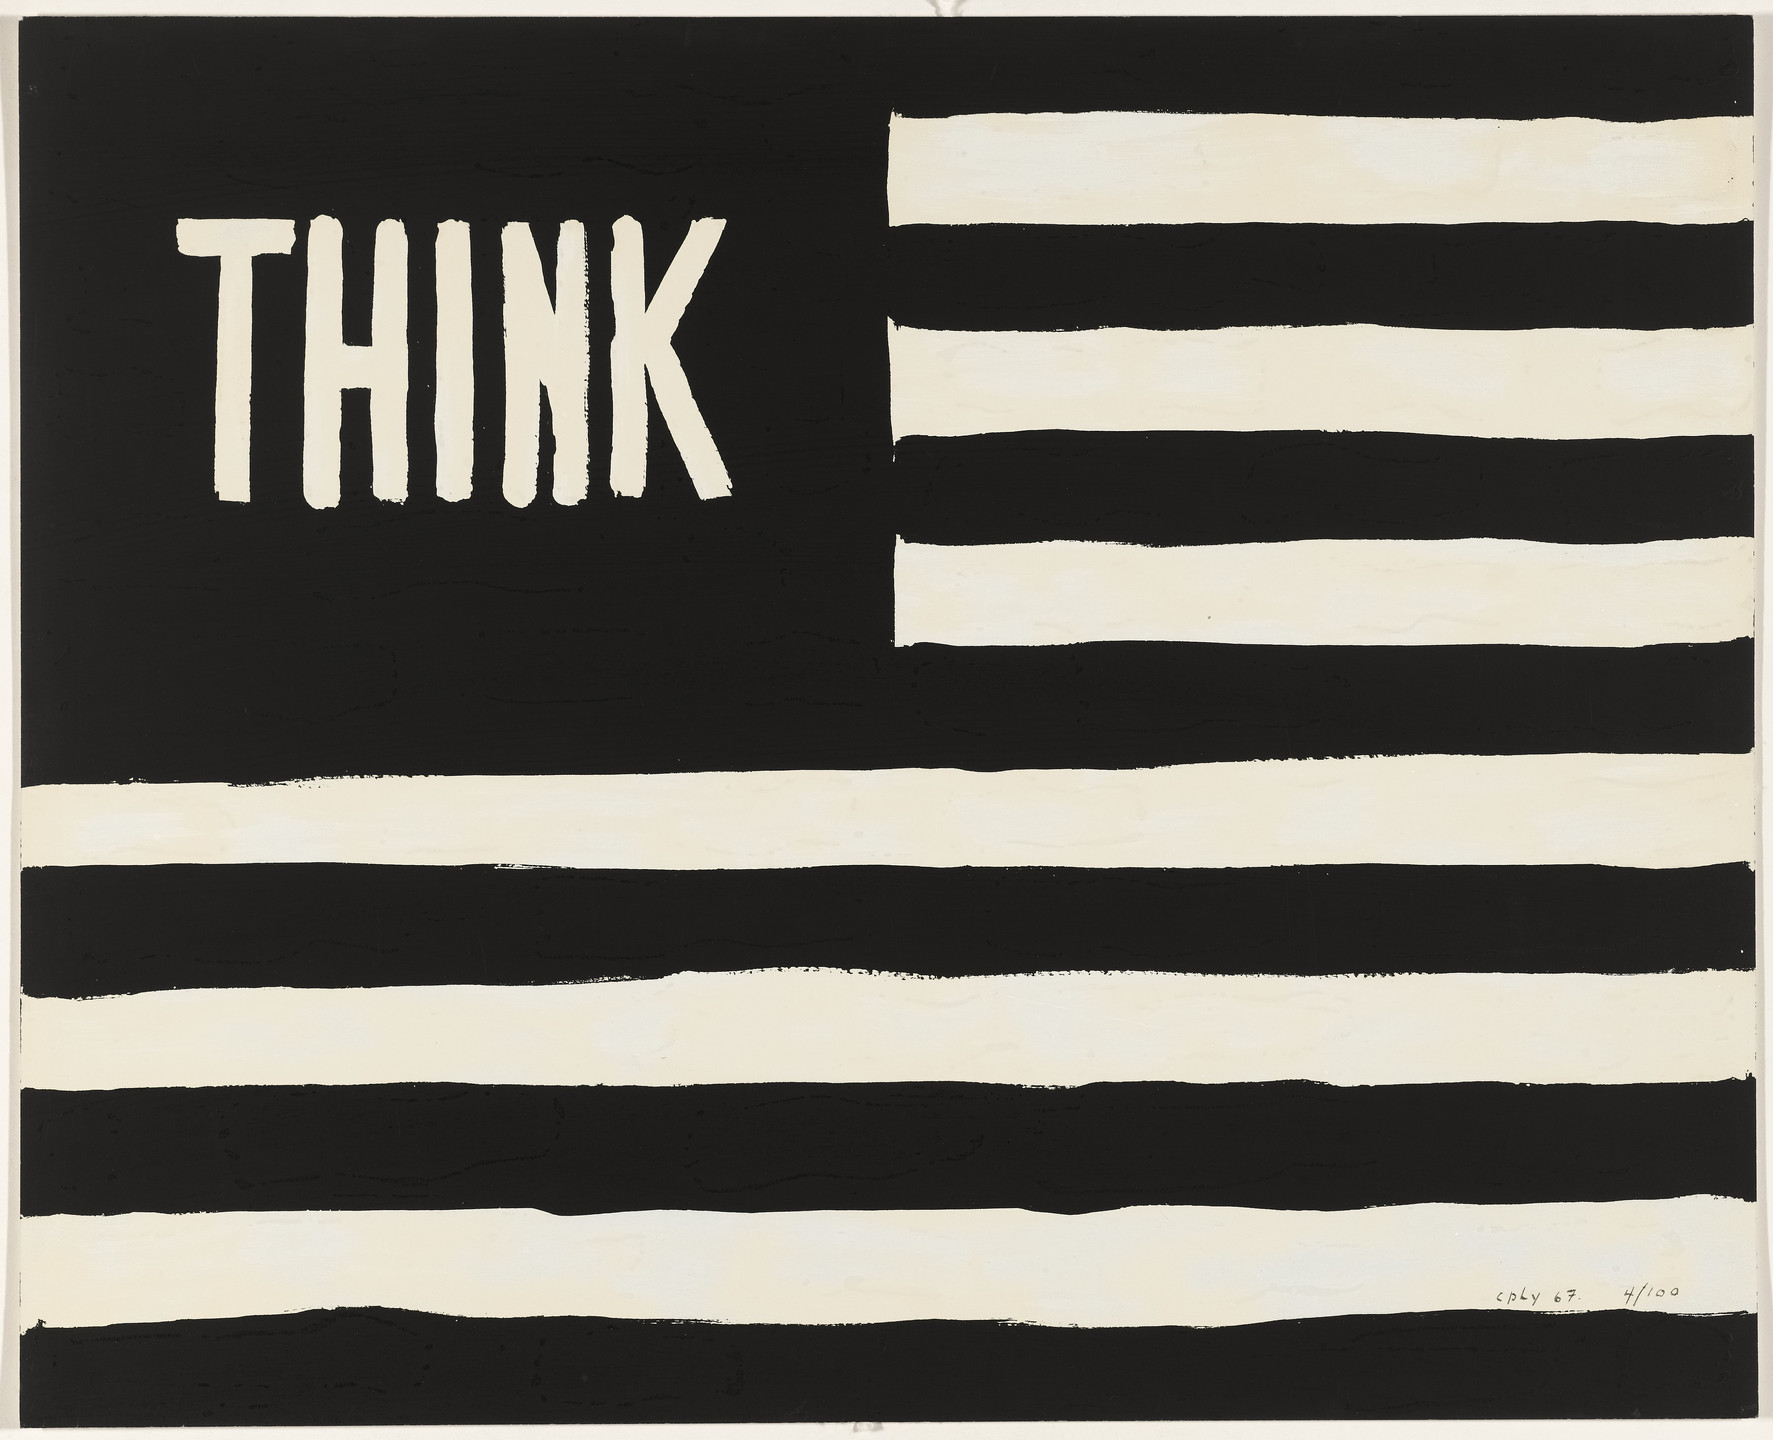 William Copley. Untitled from Artists and Writers Protest against the War in Vietnam. 1967